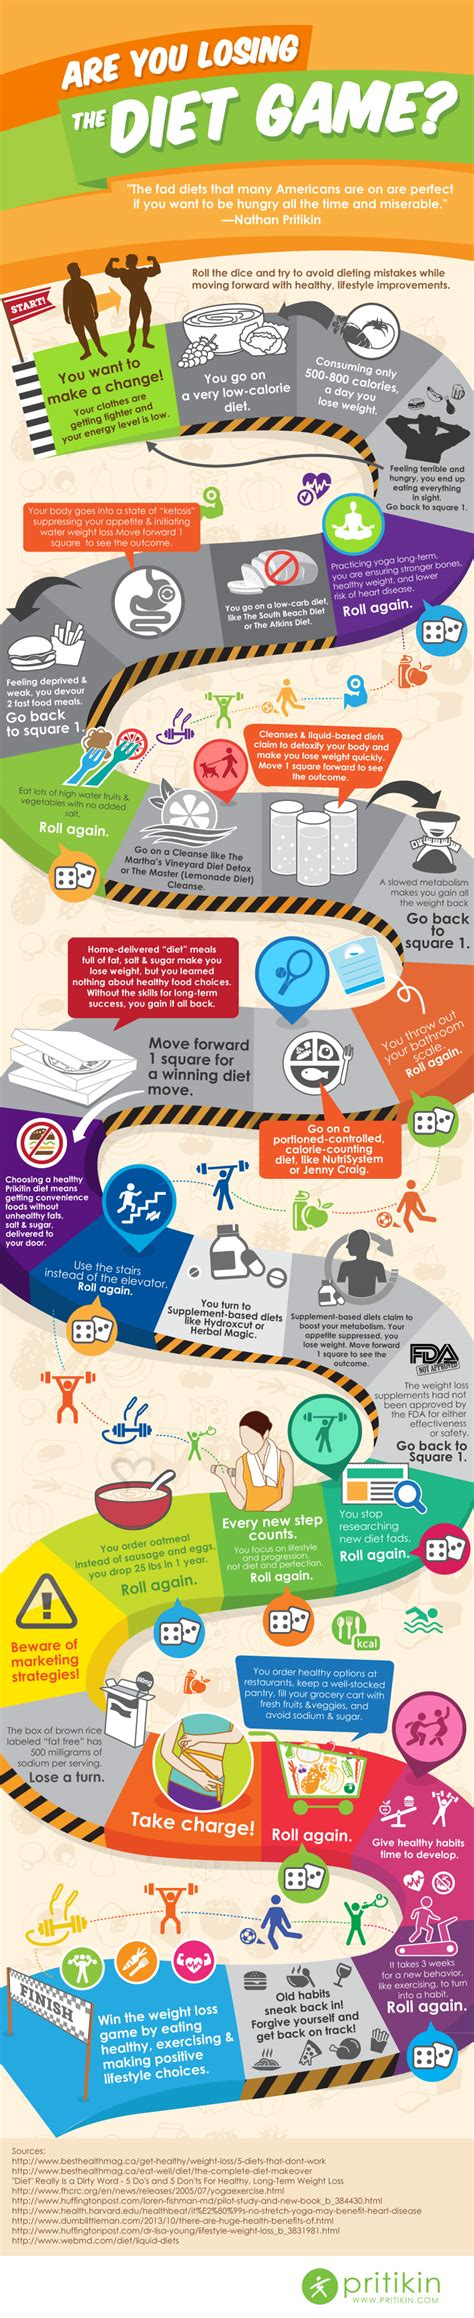 weight management infographic are you losing the diet infographic pritikin